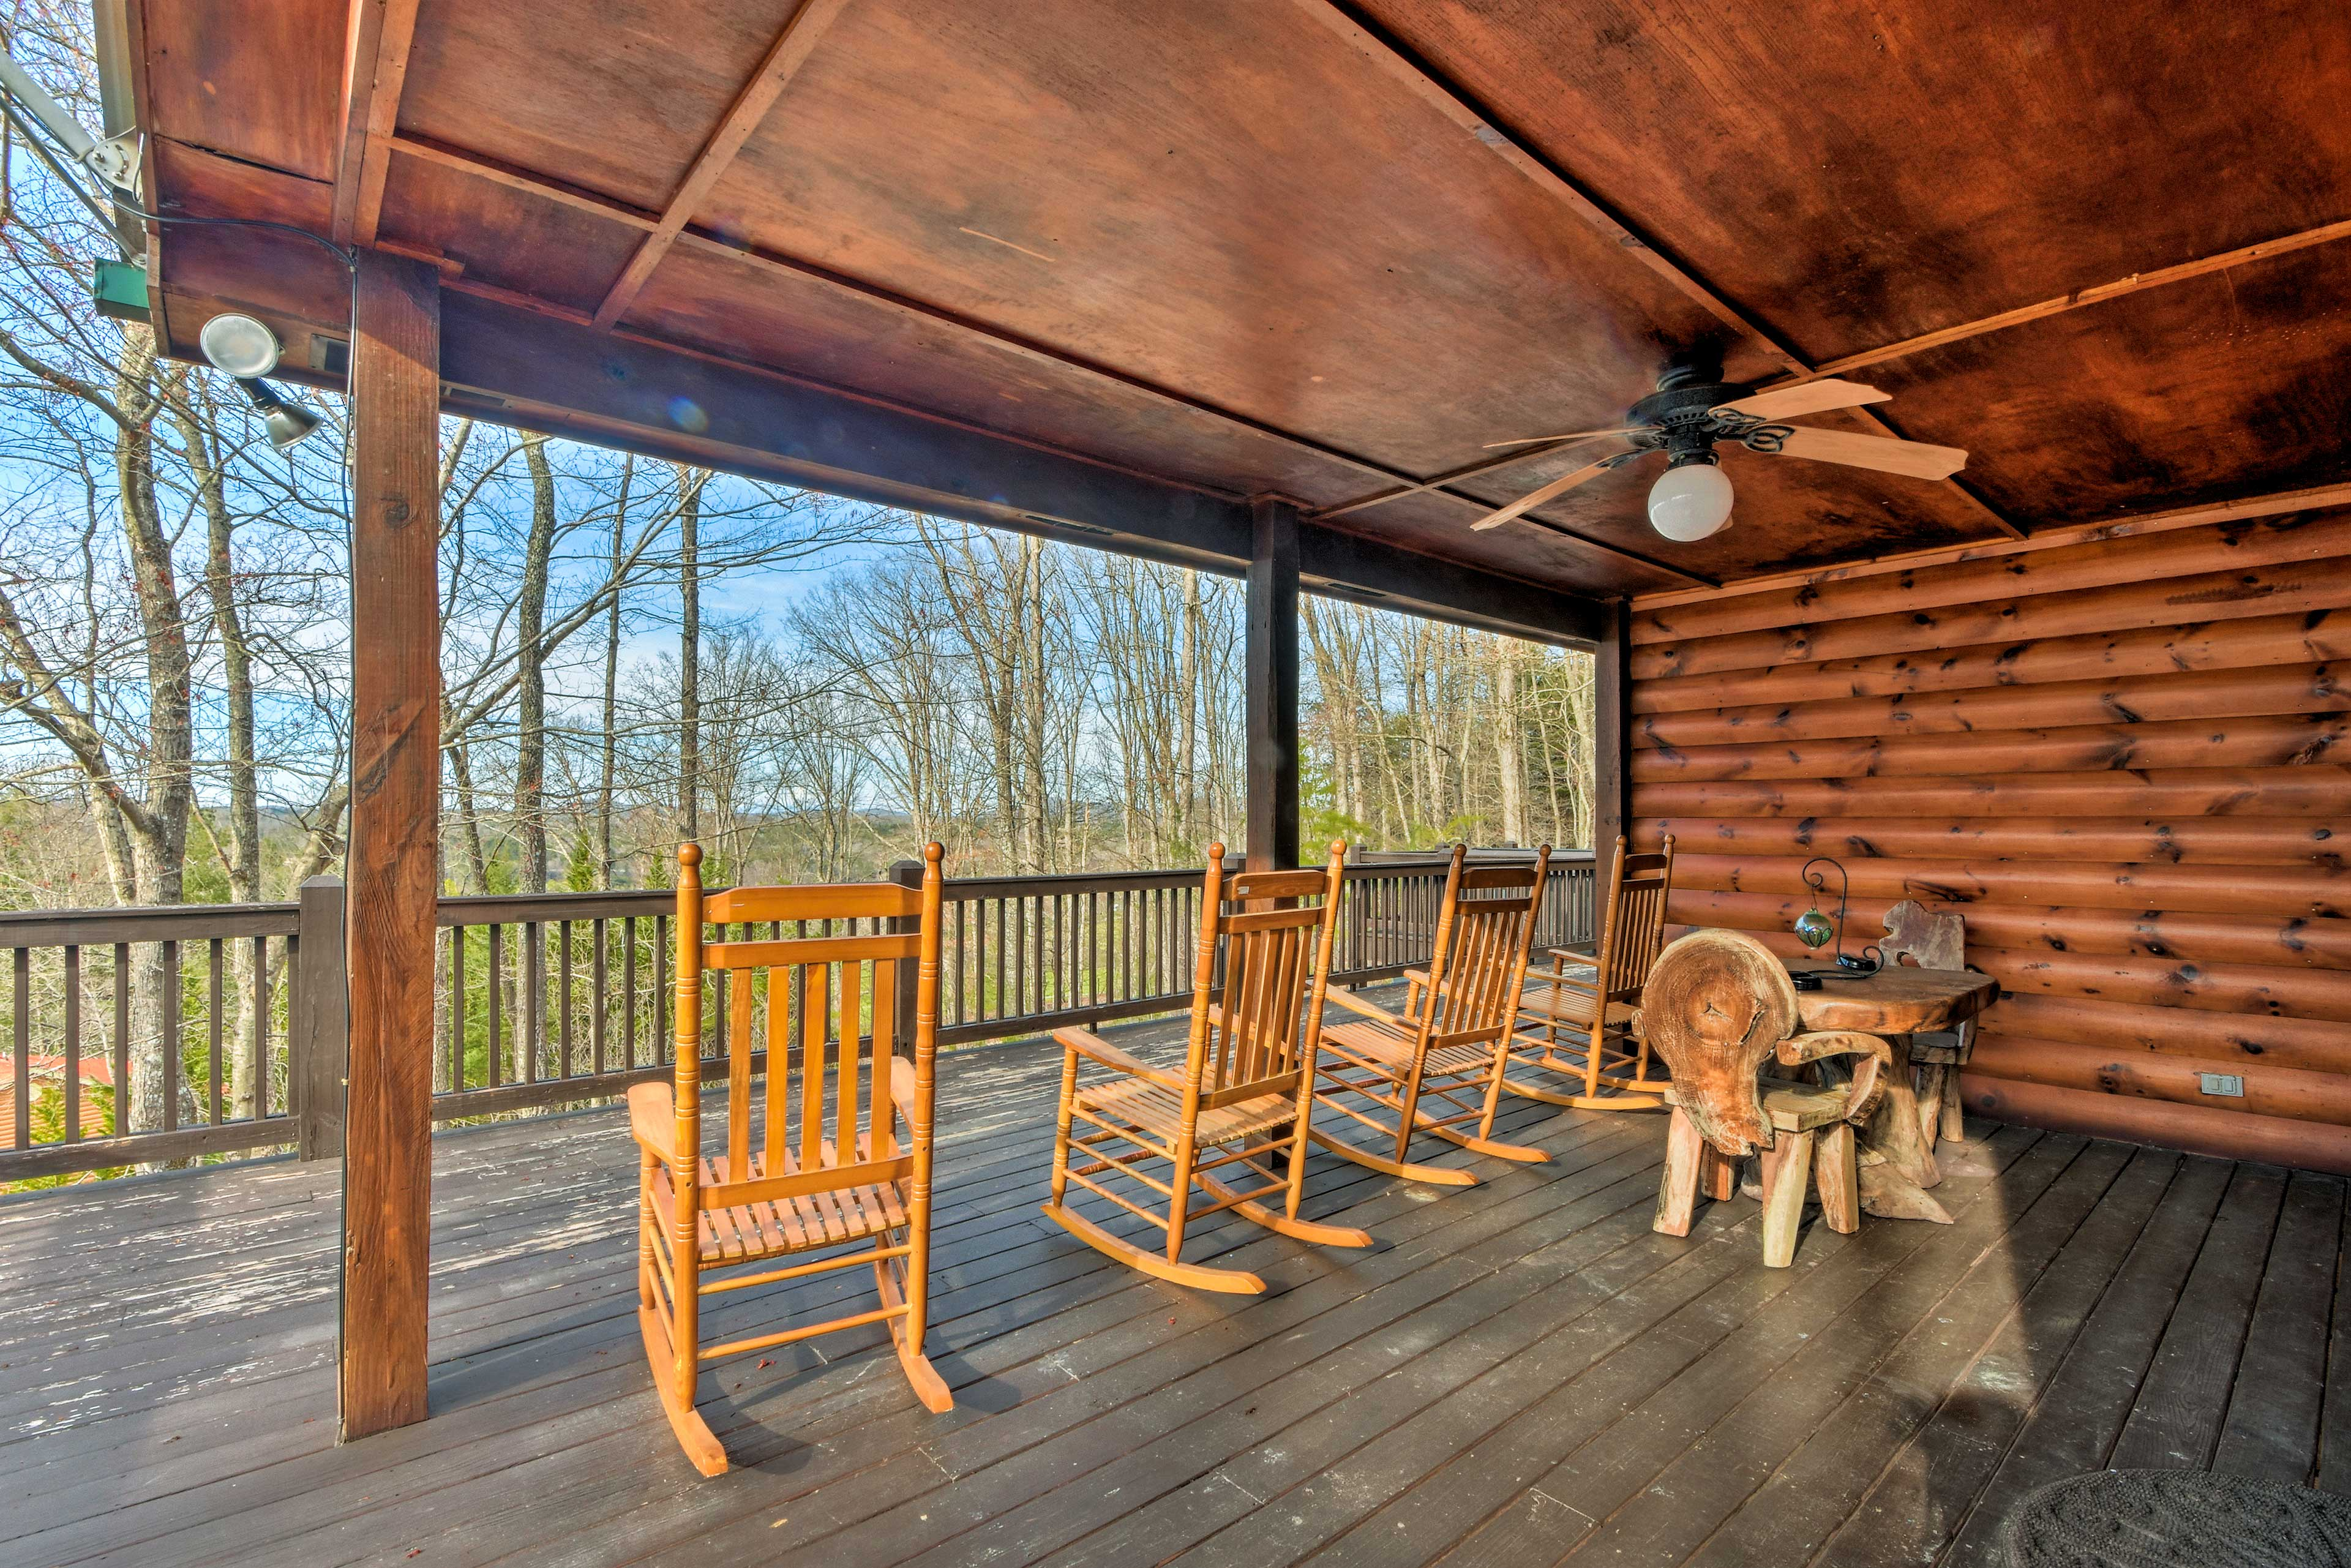 The spacious home boasts mountain views from the deck and hot tub.